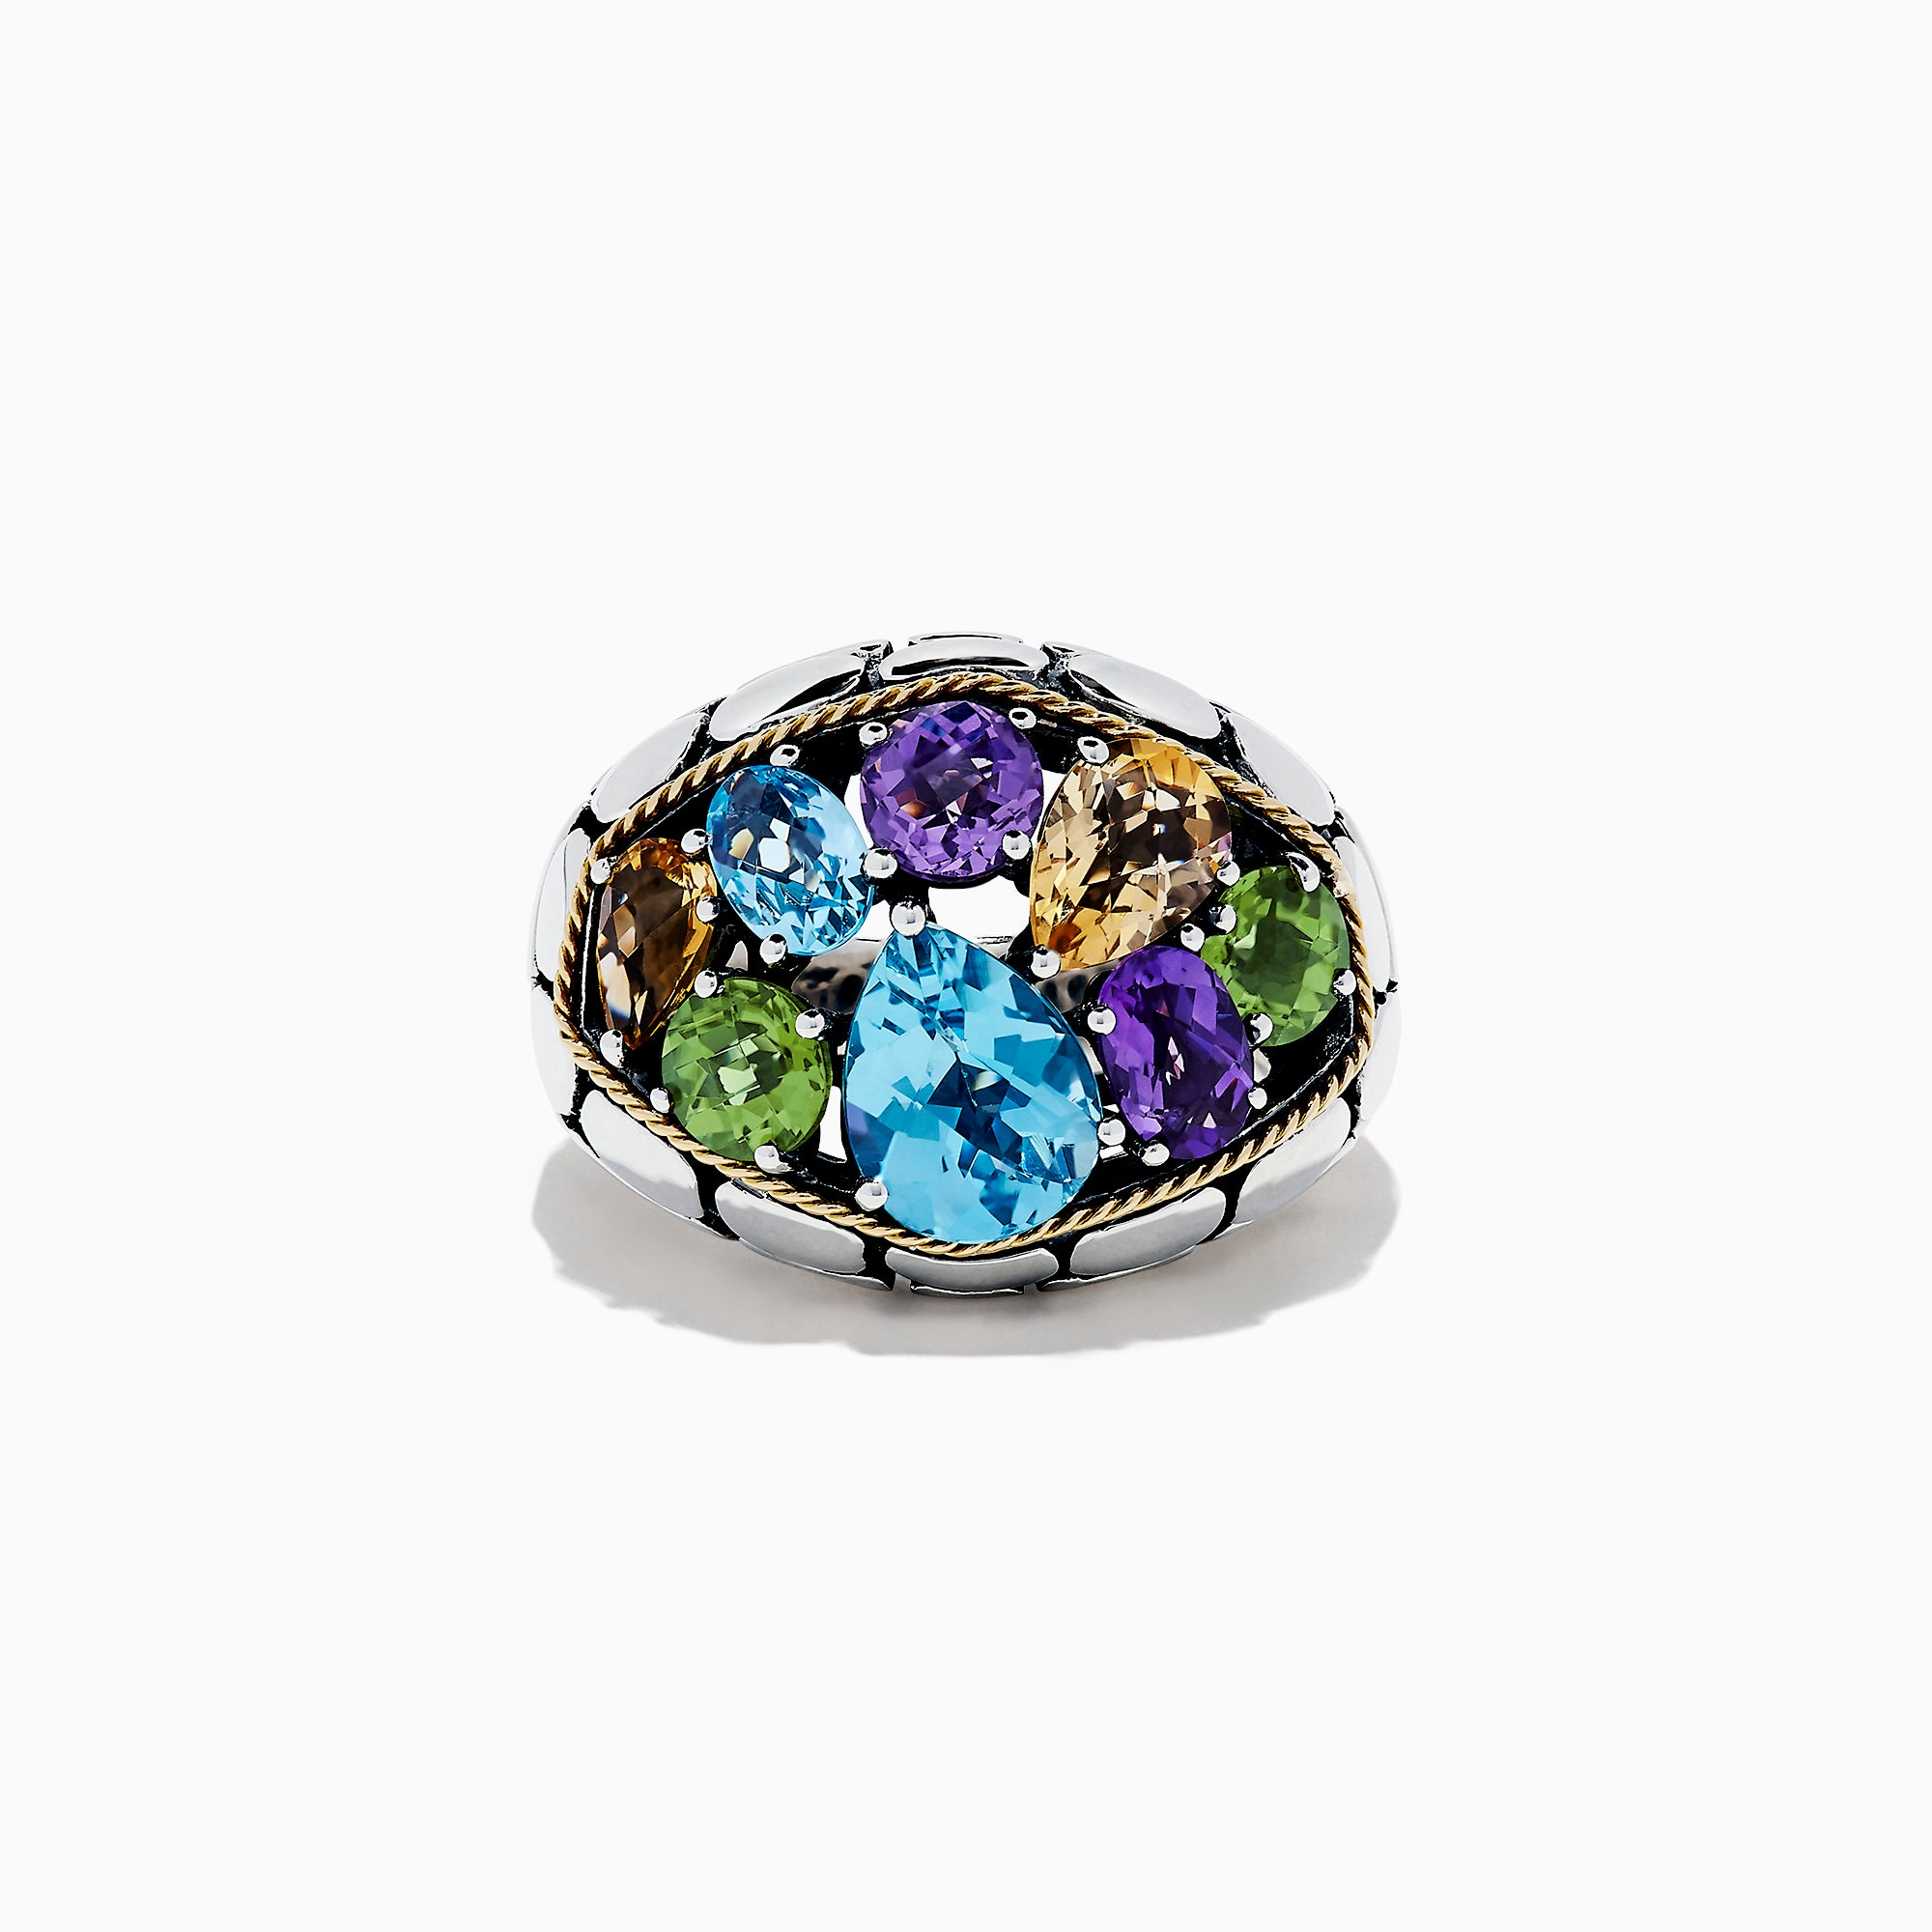 Effy 925 Sterling Silver & 18K Gold Multi Gemstone Ring, 6.25 TCW